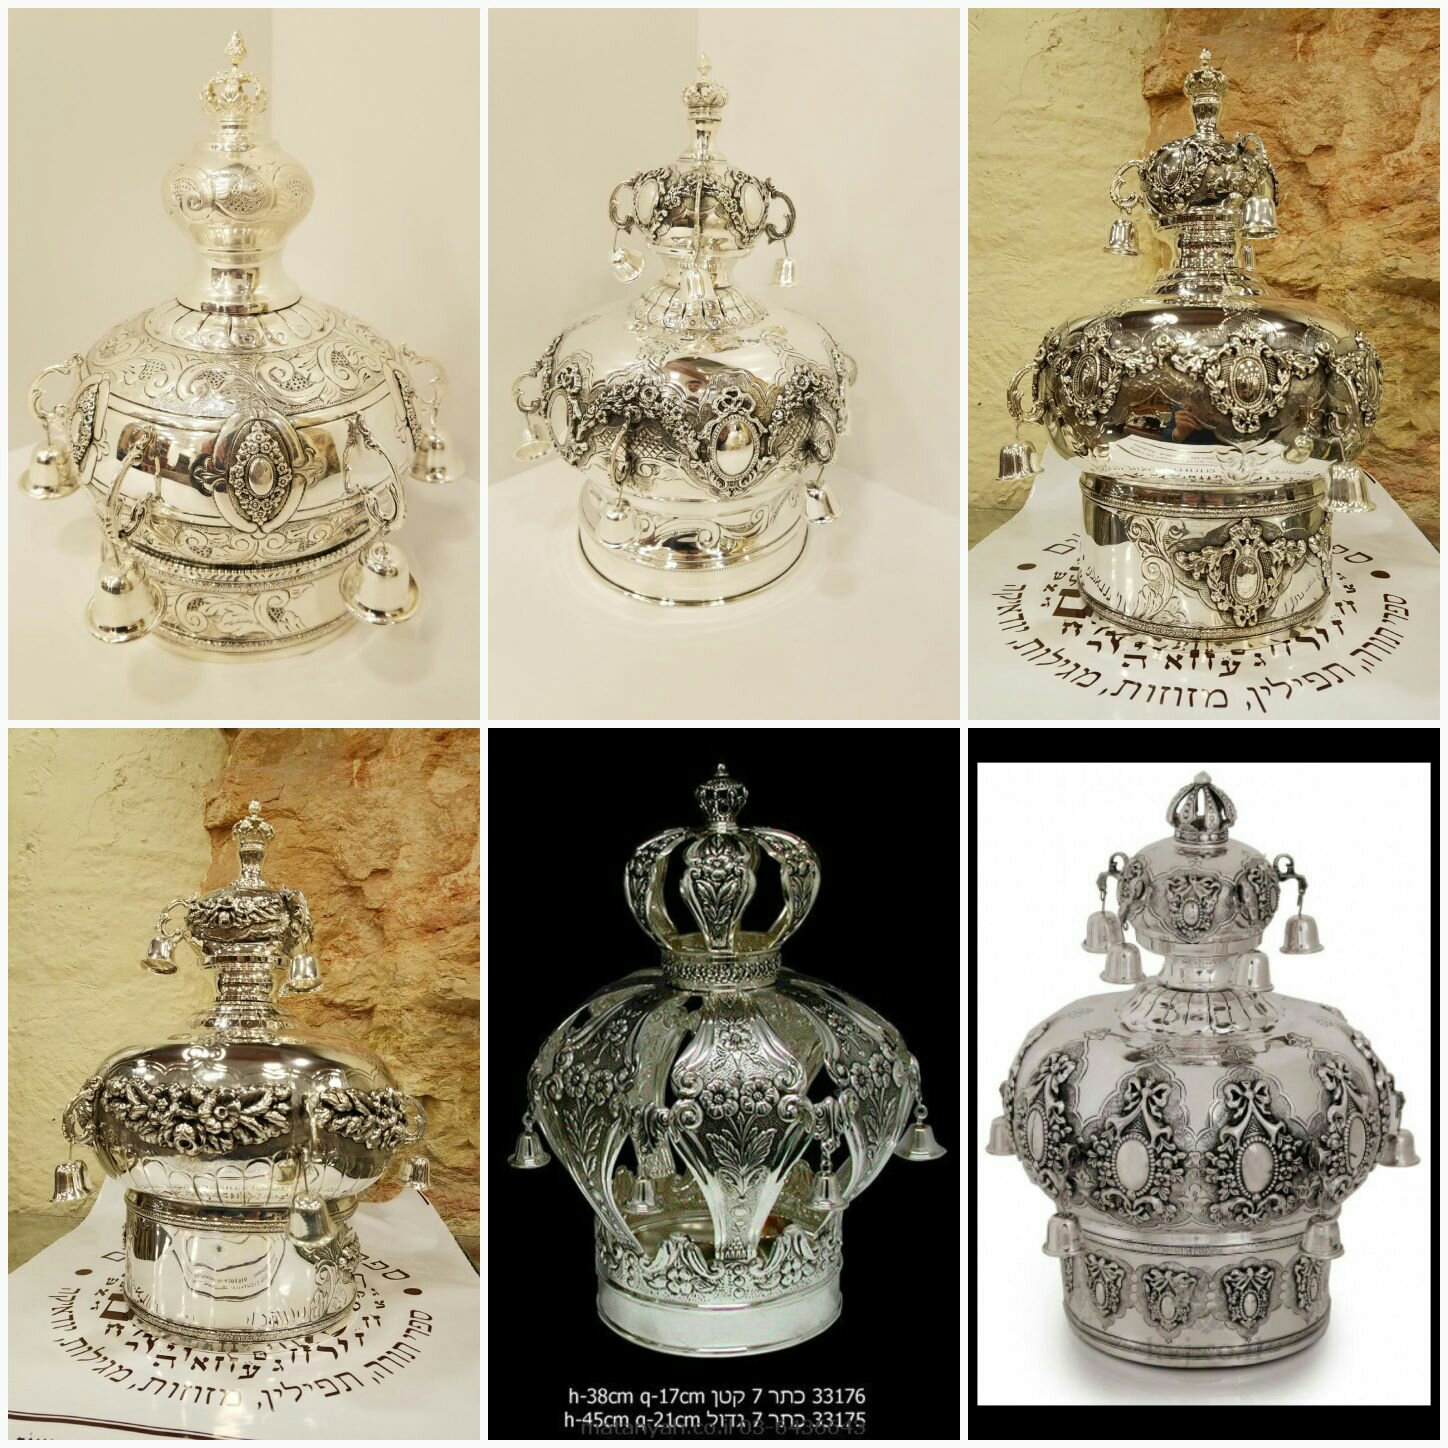 Torah scroll crowns